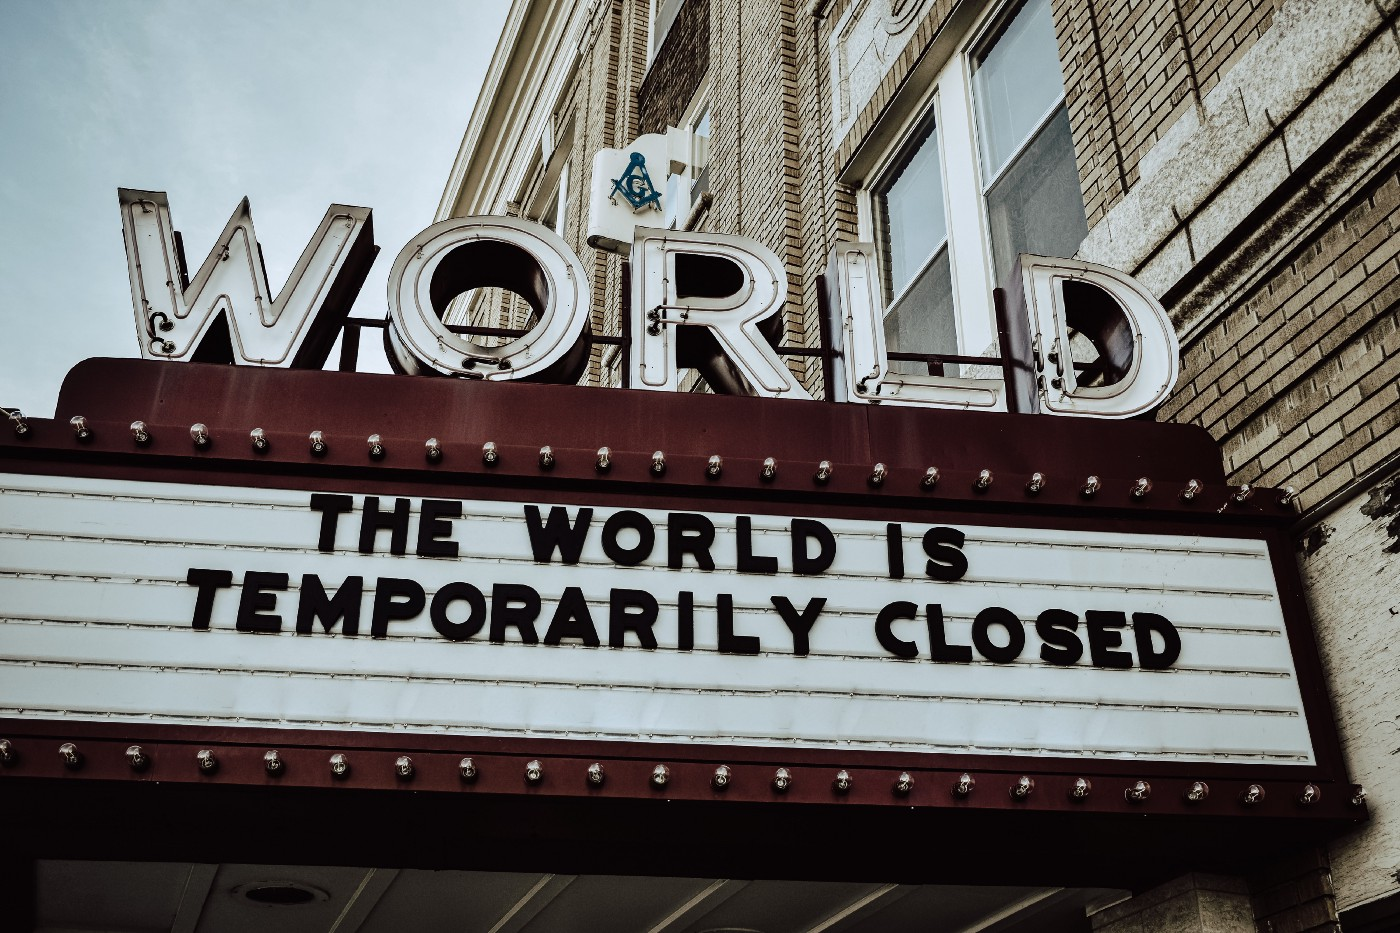 Movie billboard saying the world is temporarily closed